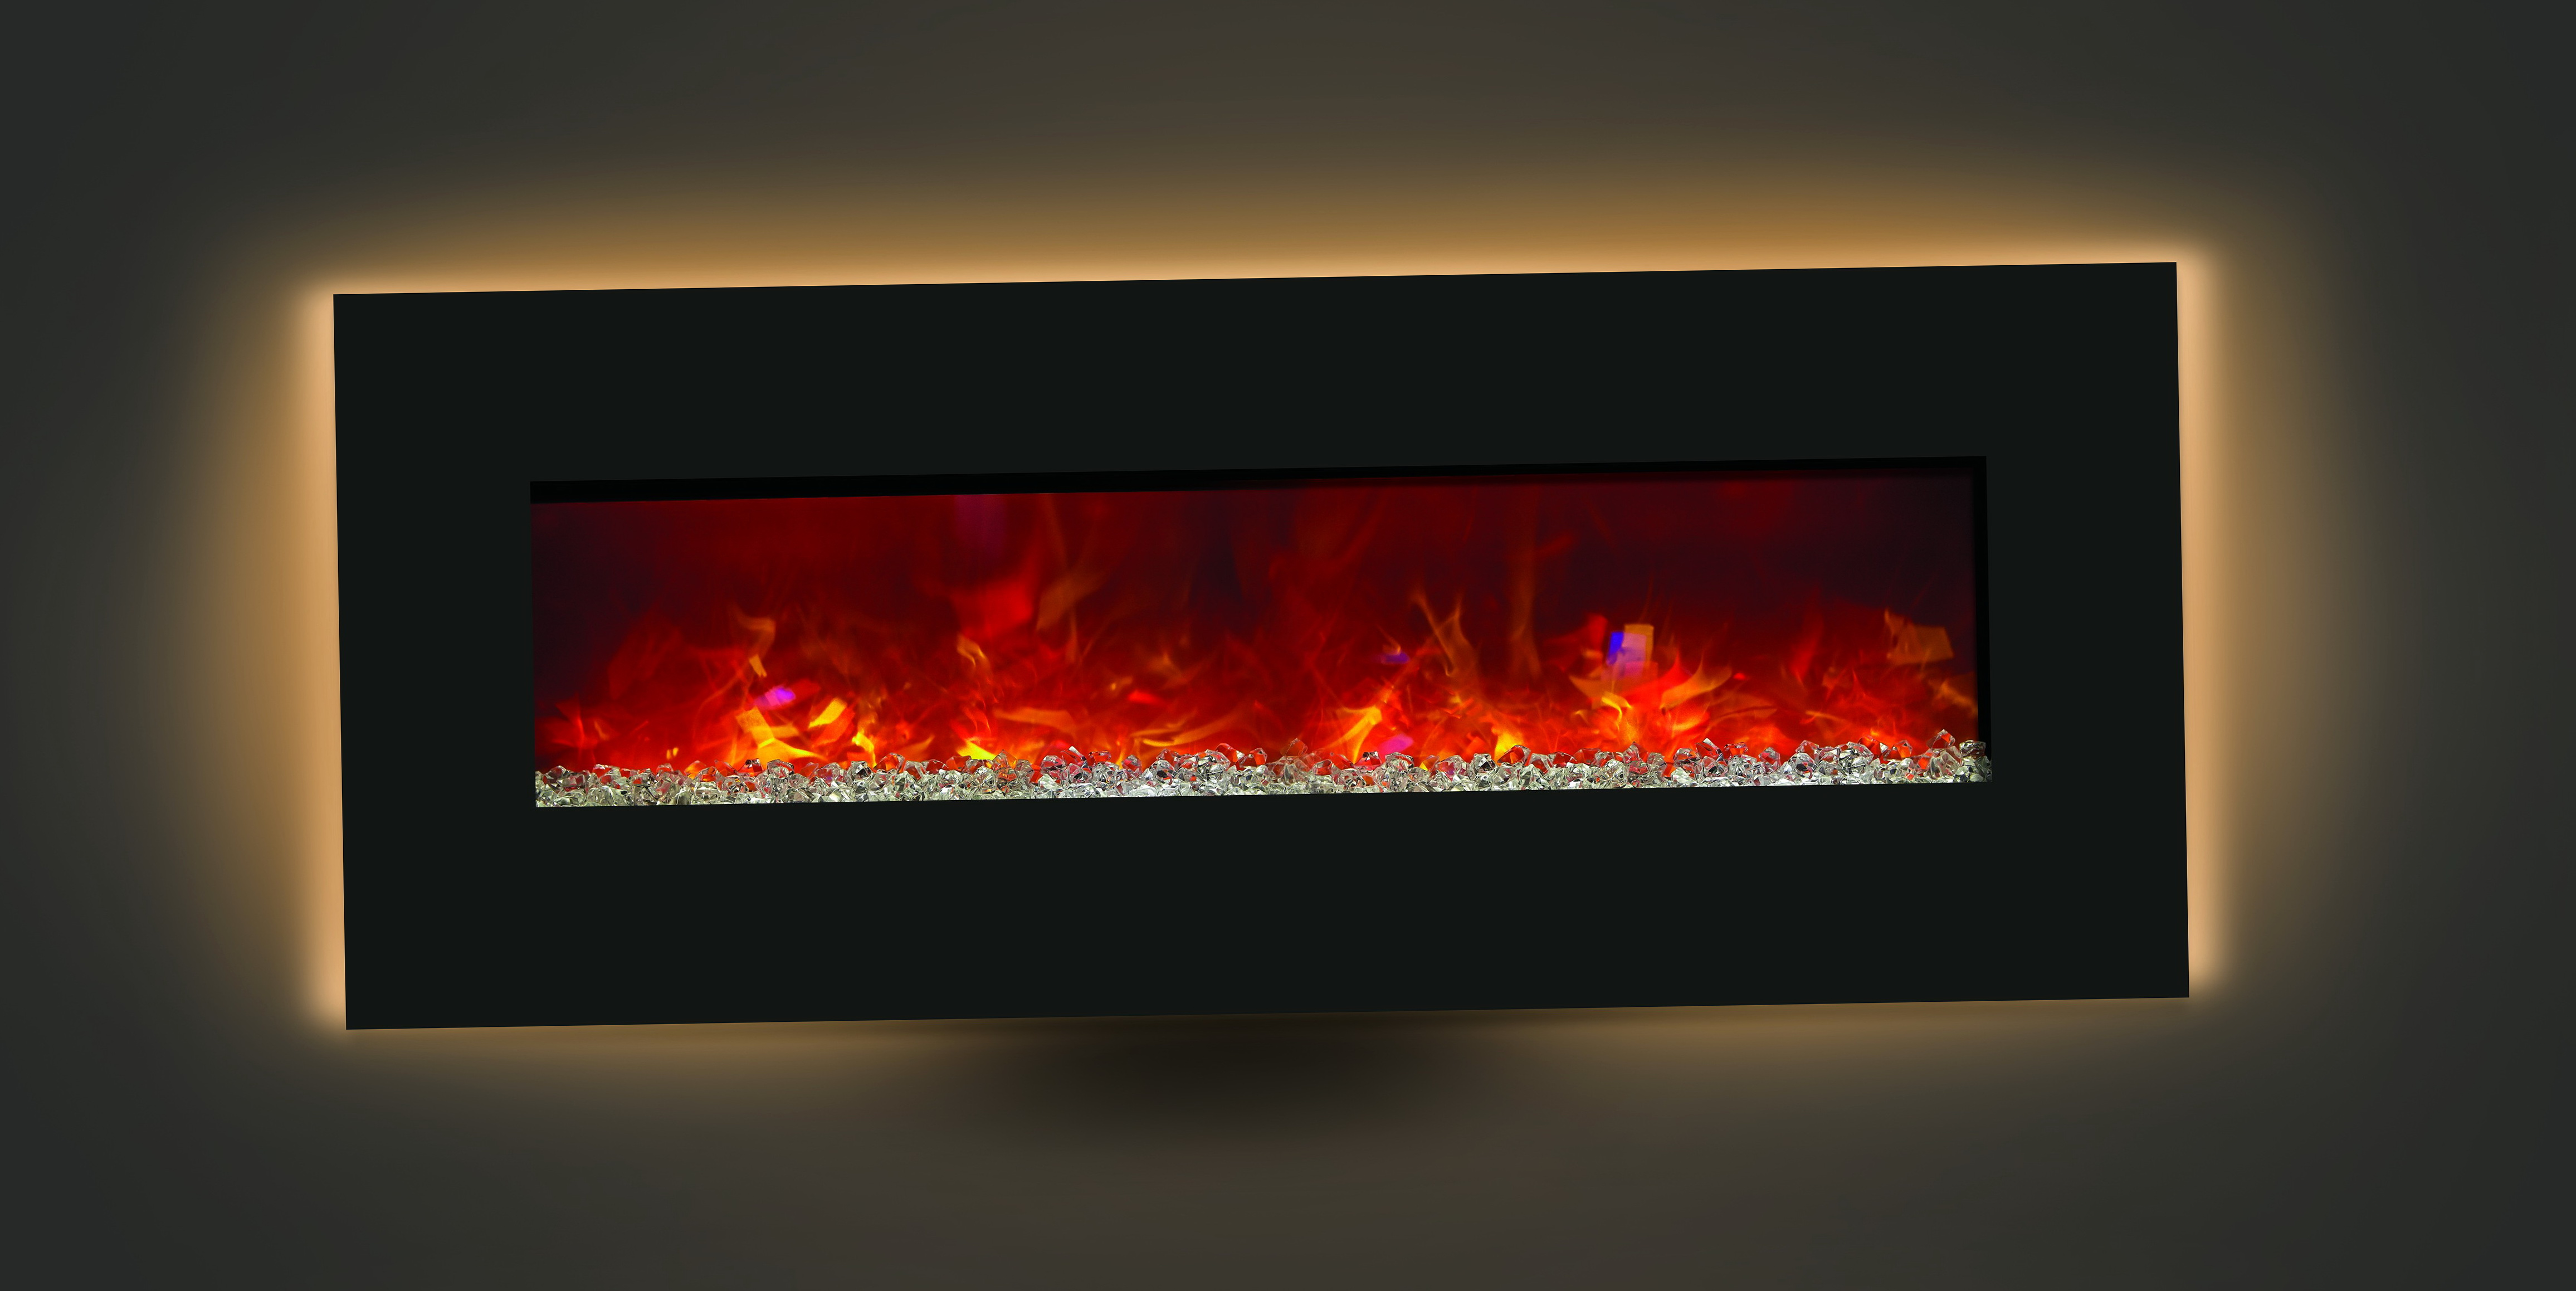 fireplace media products fullview electric most in sh built flames realistic landscape accessories fireplaces modern